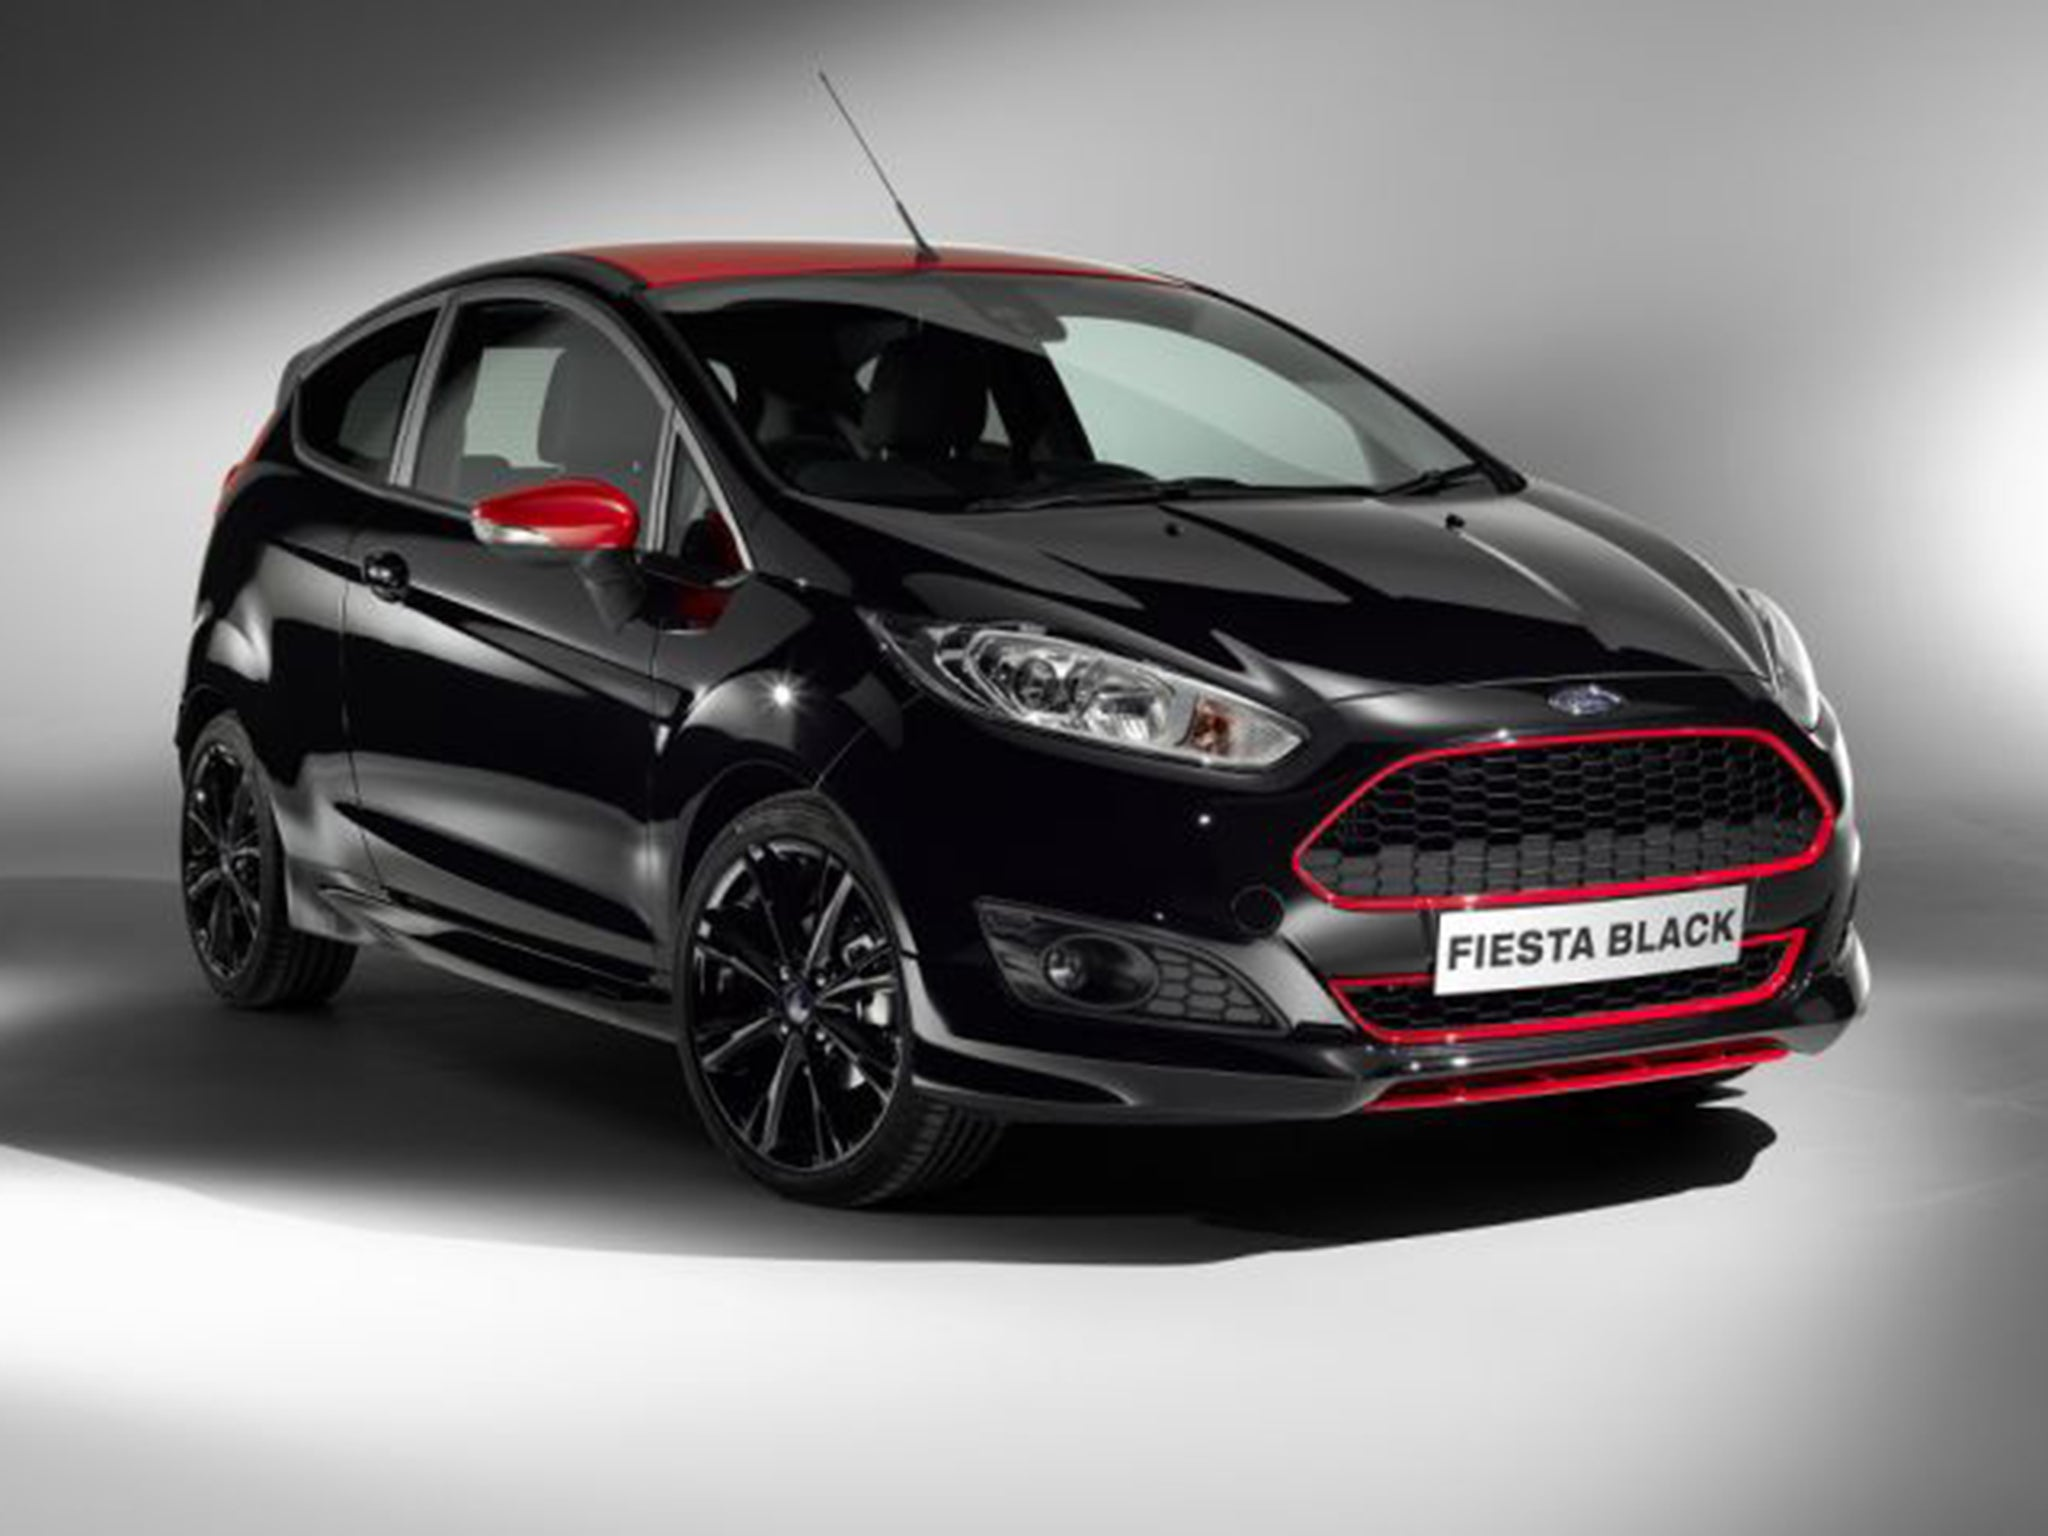 ford fiesta black edition motoring review available in any colour you like as long as it 39 s. Black Bedroom Furniture Sets. Home Design Ideas